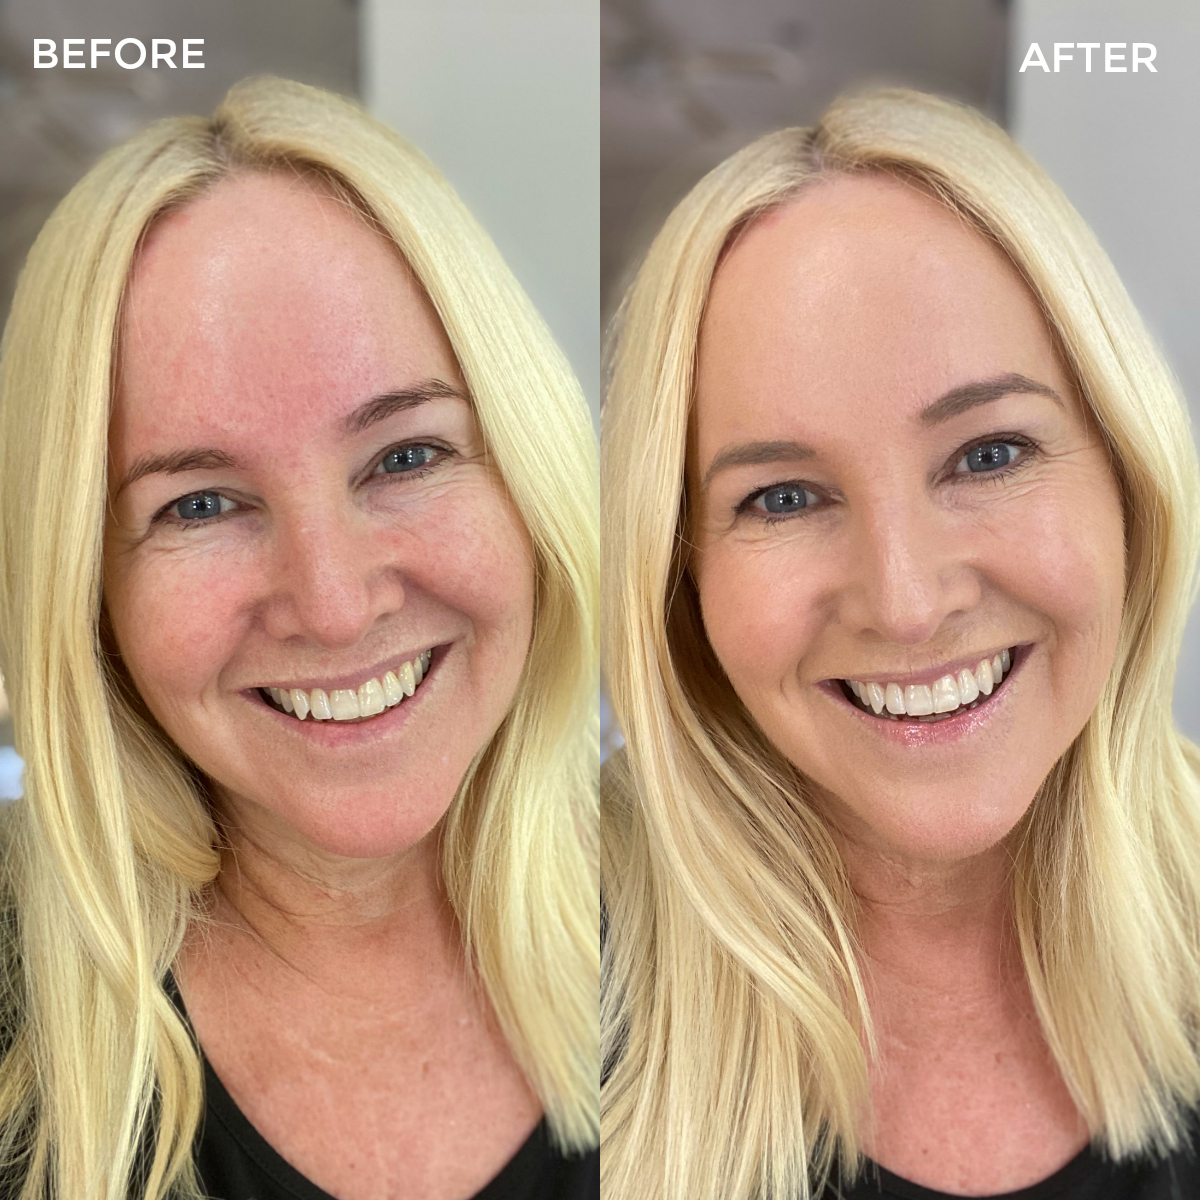 Before and After Trinny London Everyday Makeup routine